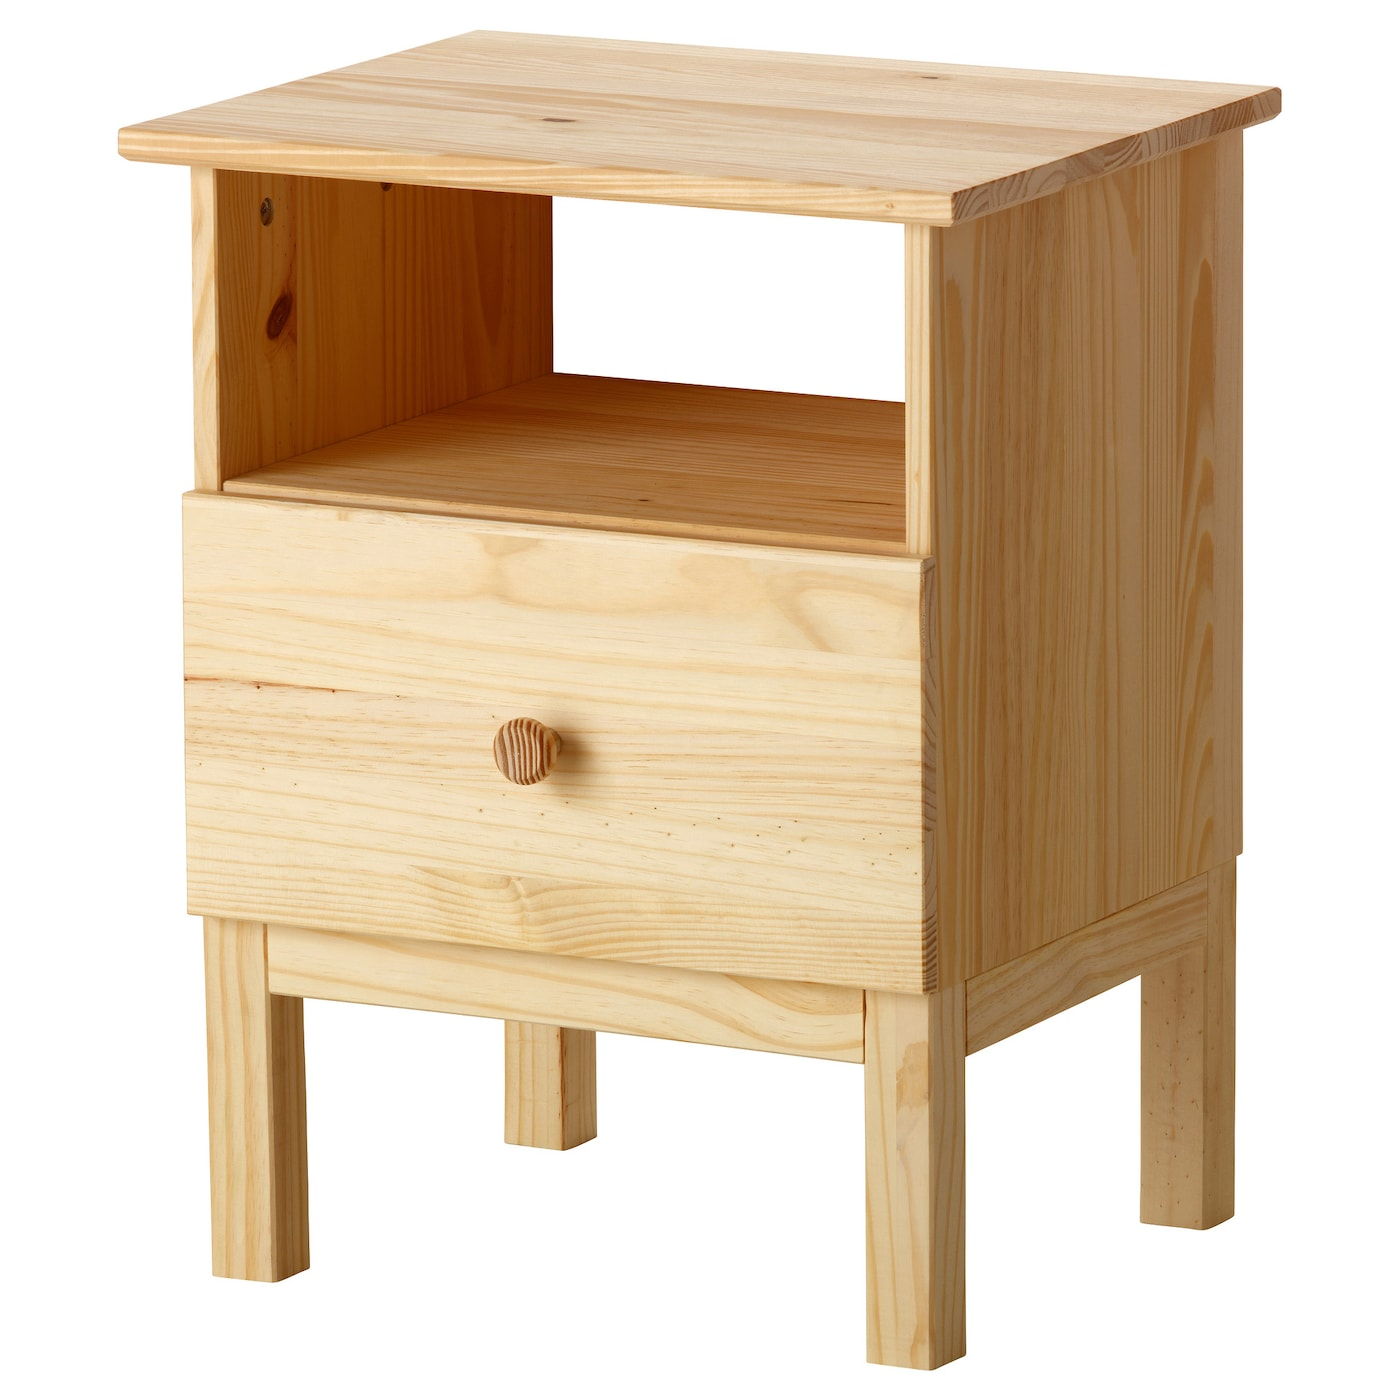 IKEA TARVA bedside table Made of solid wood, which is a hardwearing and warm natural material.